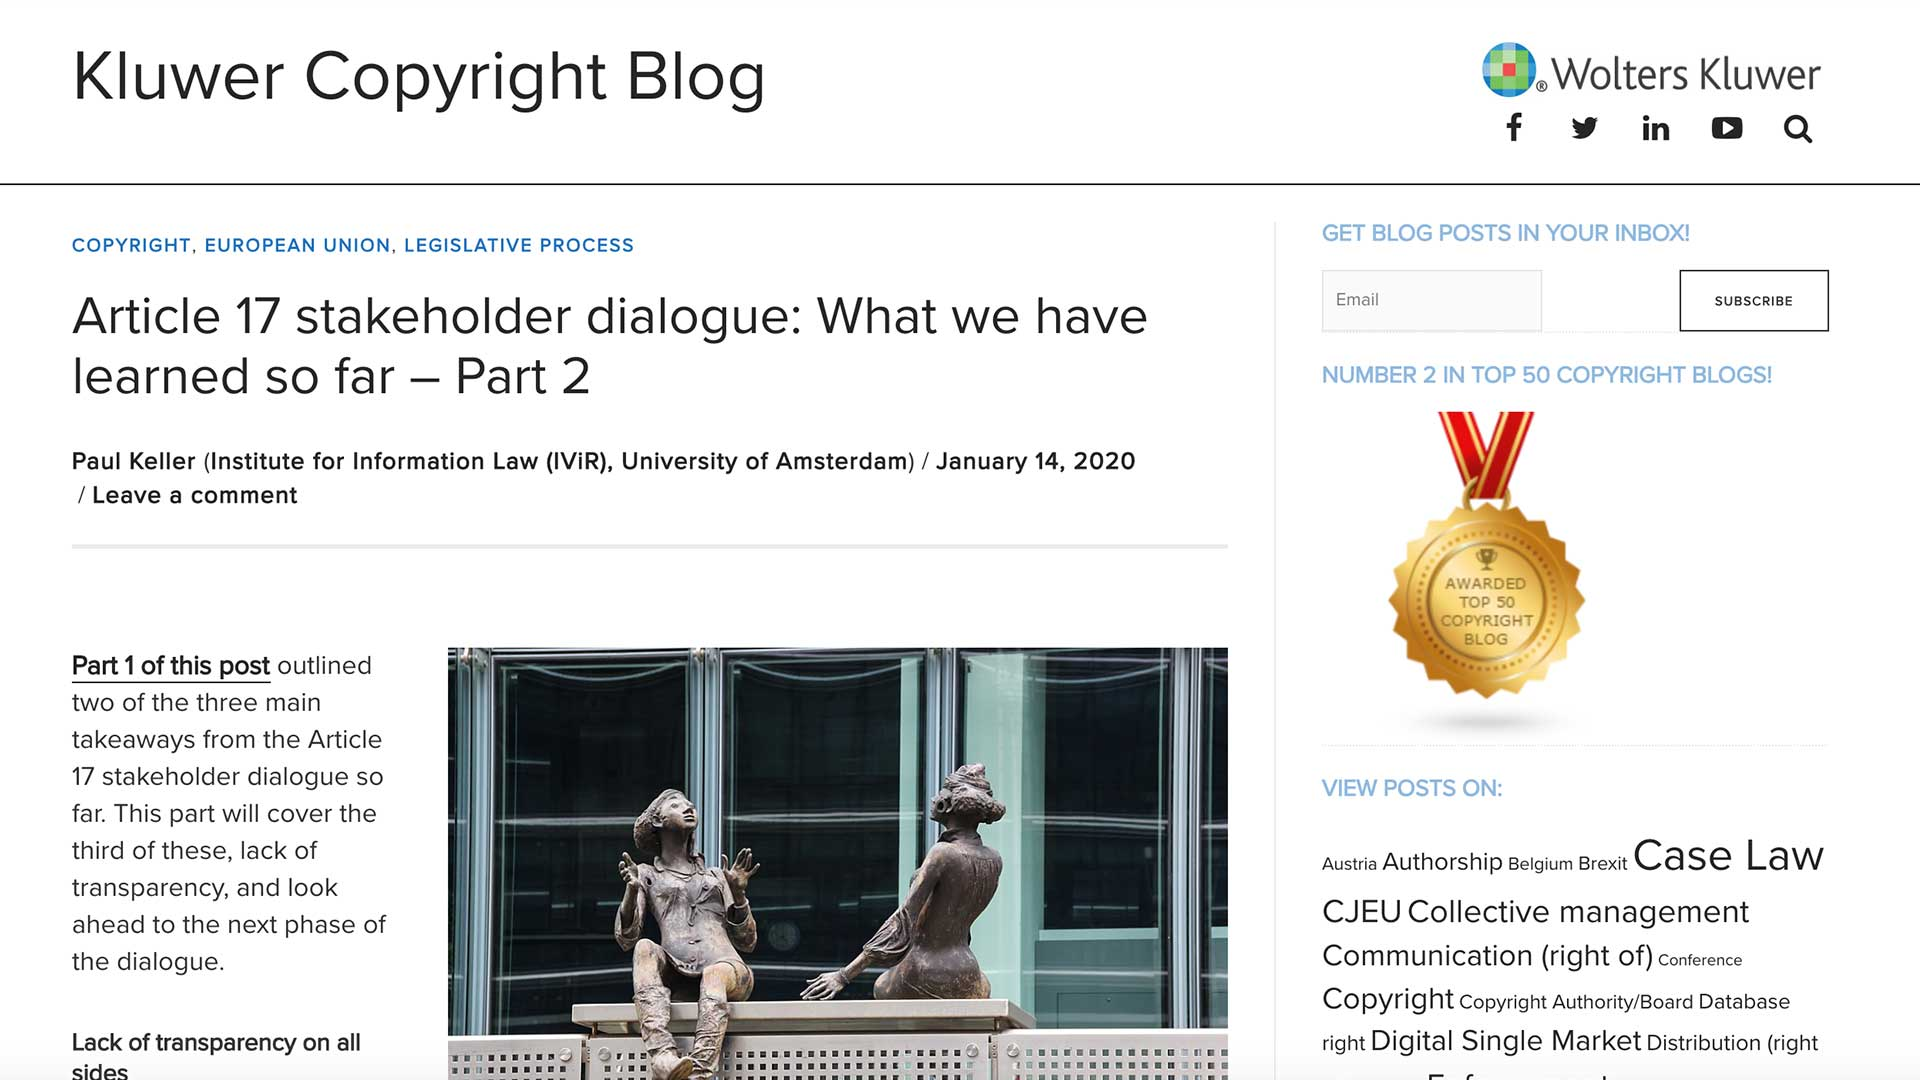 Fairness Rocks News Article 17 stakeholder dialogue: What we have learned so far – Part 2